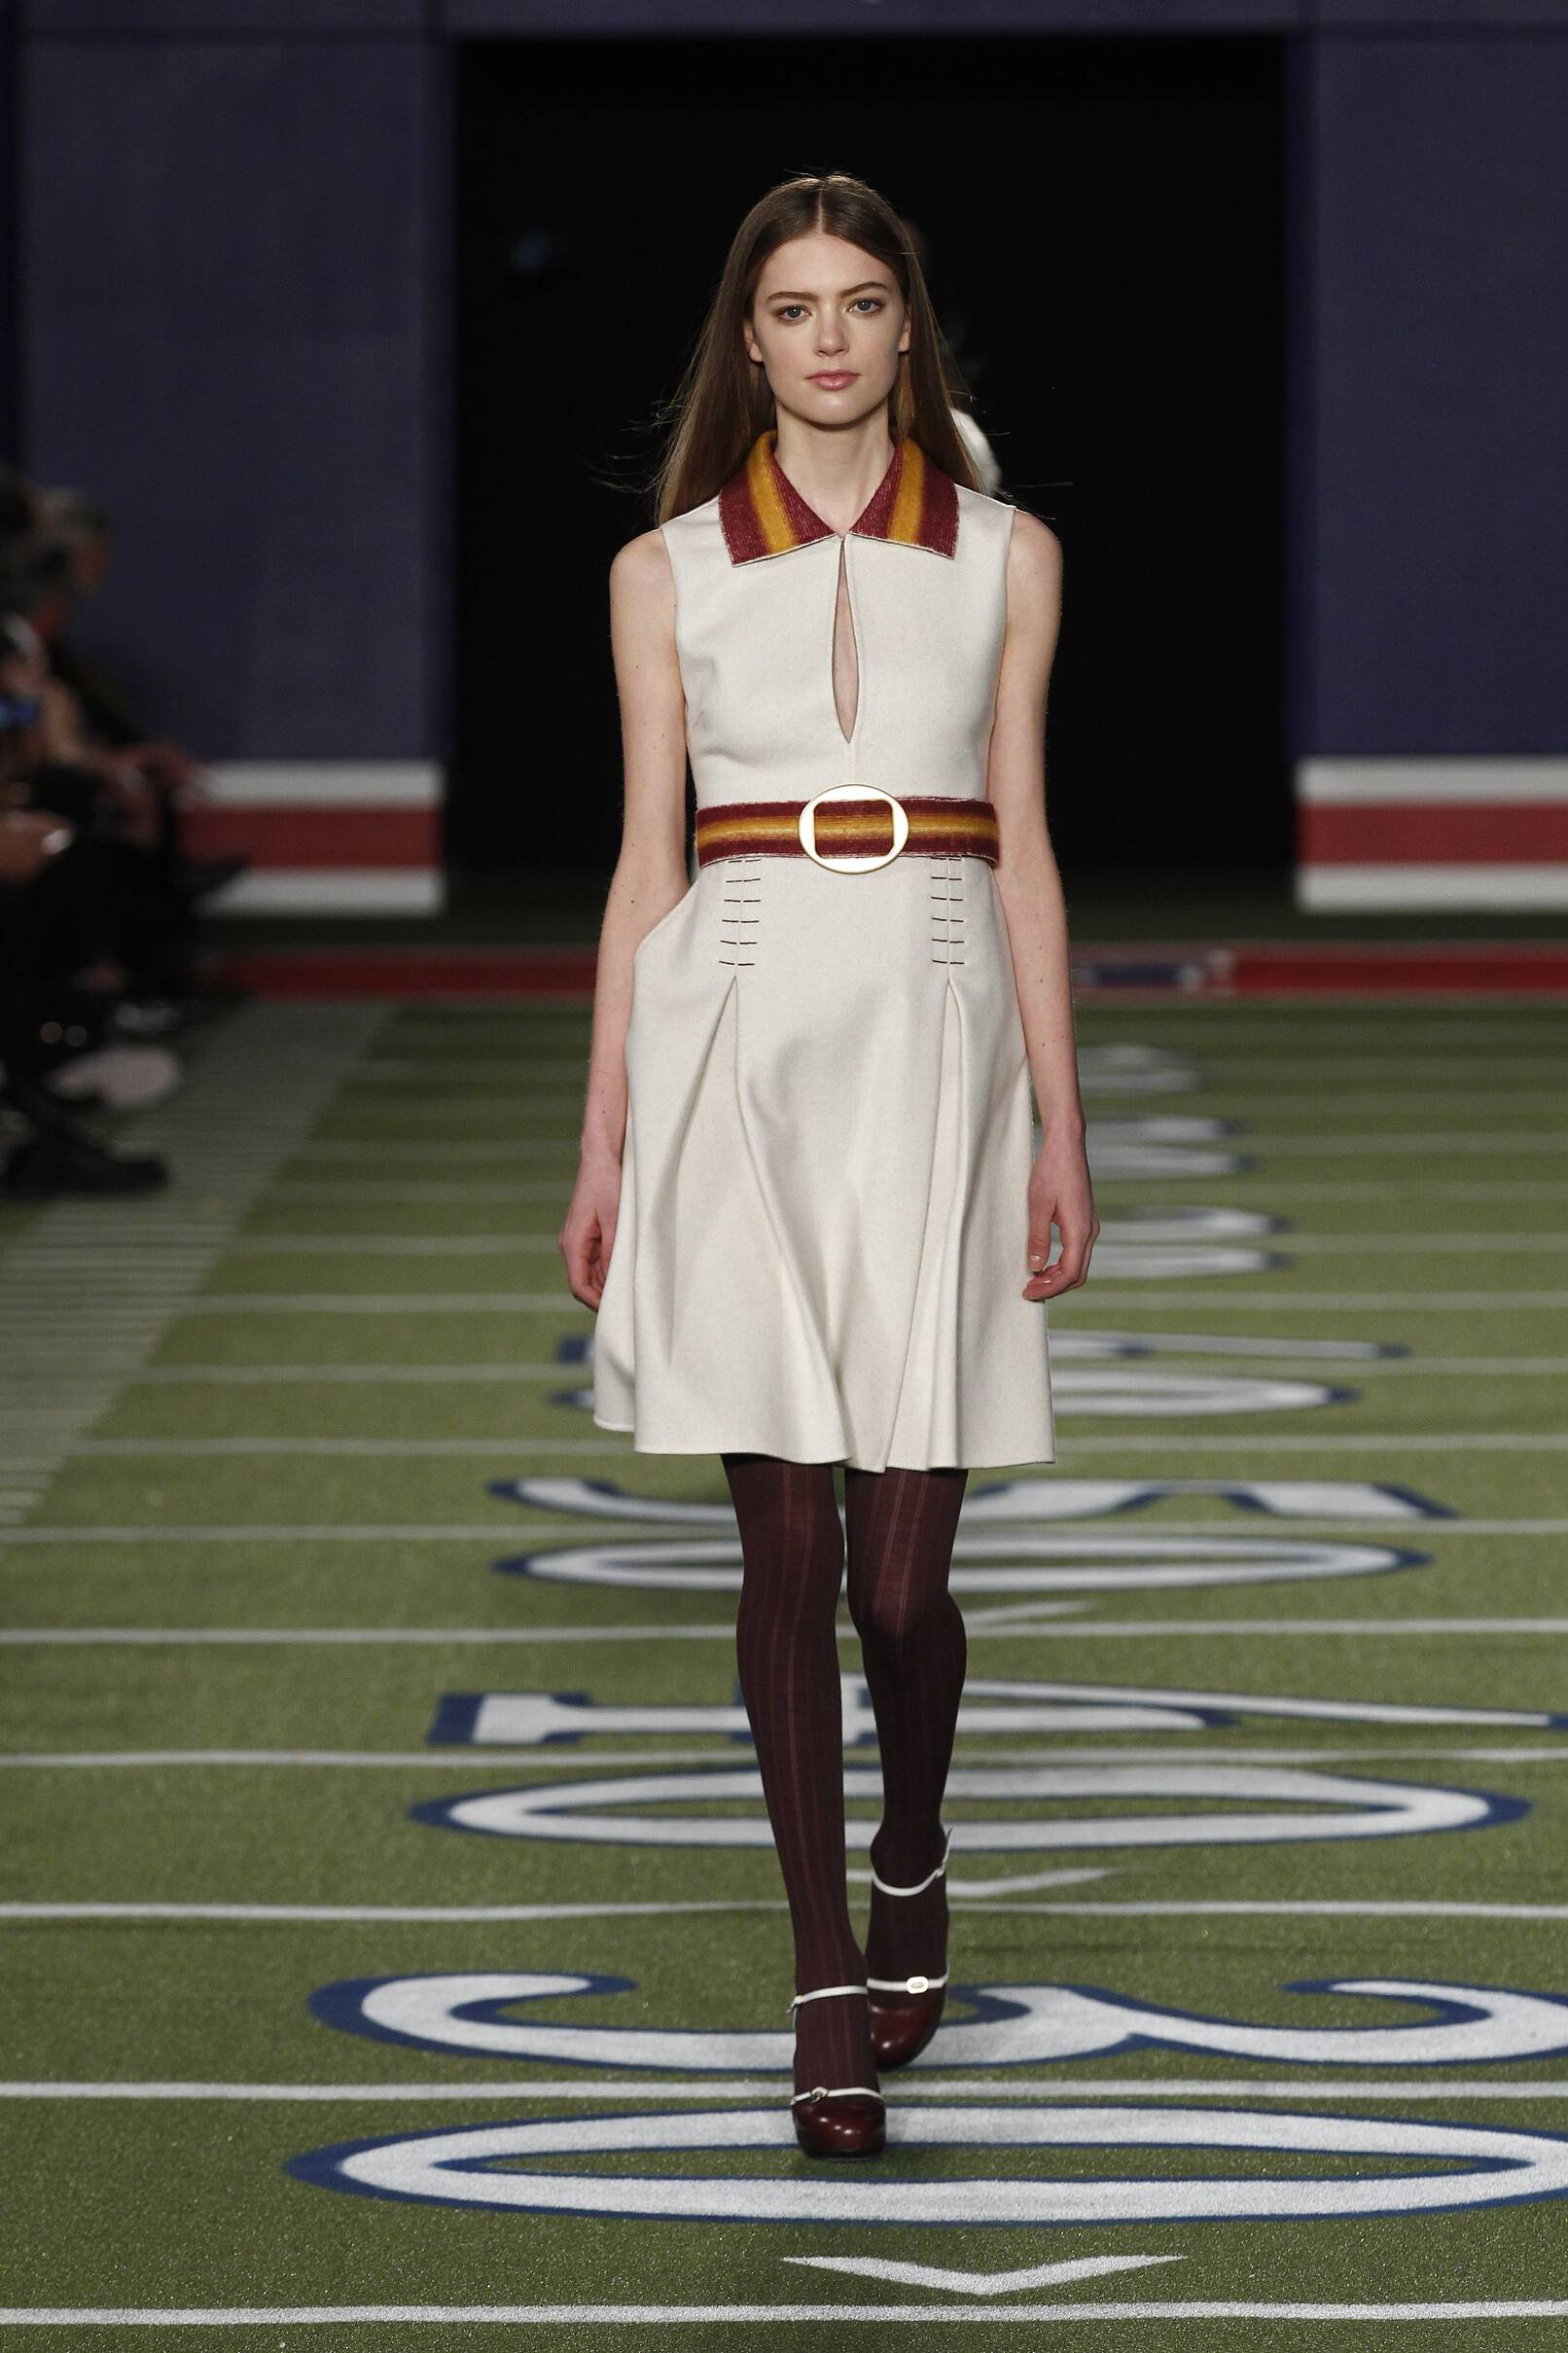 Tommy Hilfiger Women's Collection 2015 2016